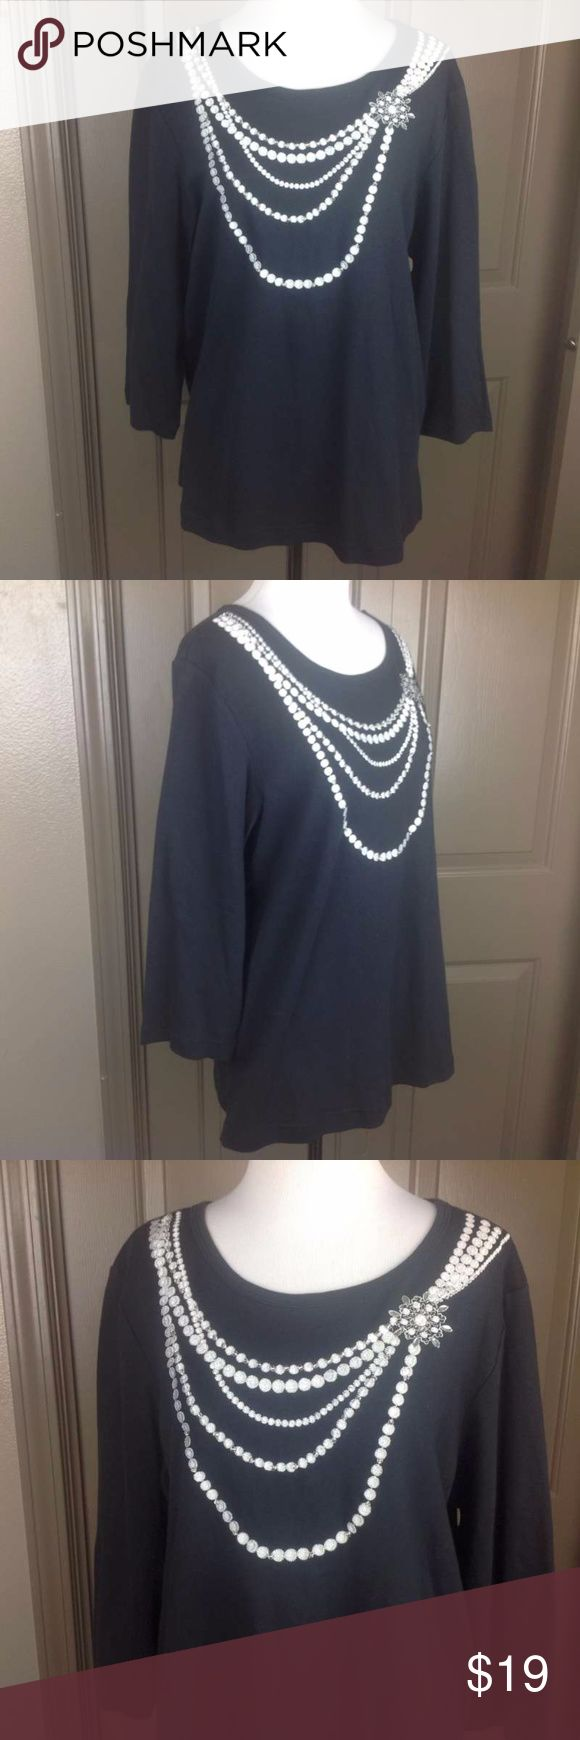 NWT Blaine Trump Top Large Embellished Beaded Embr New with tags; NWT Blaine Trump Top Large Embellished Beaded Embroidered 3/4 Sleeve 100% Cotton;  21.5 inch across bust 25.5 inch length Blaine Trump Tops Blouses